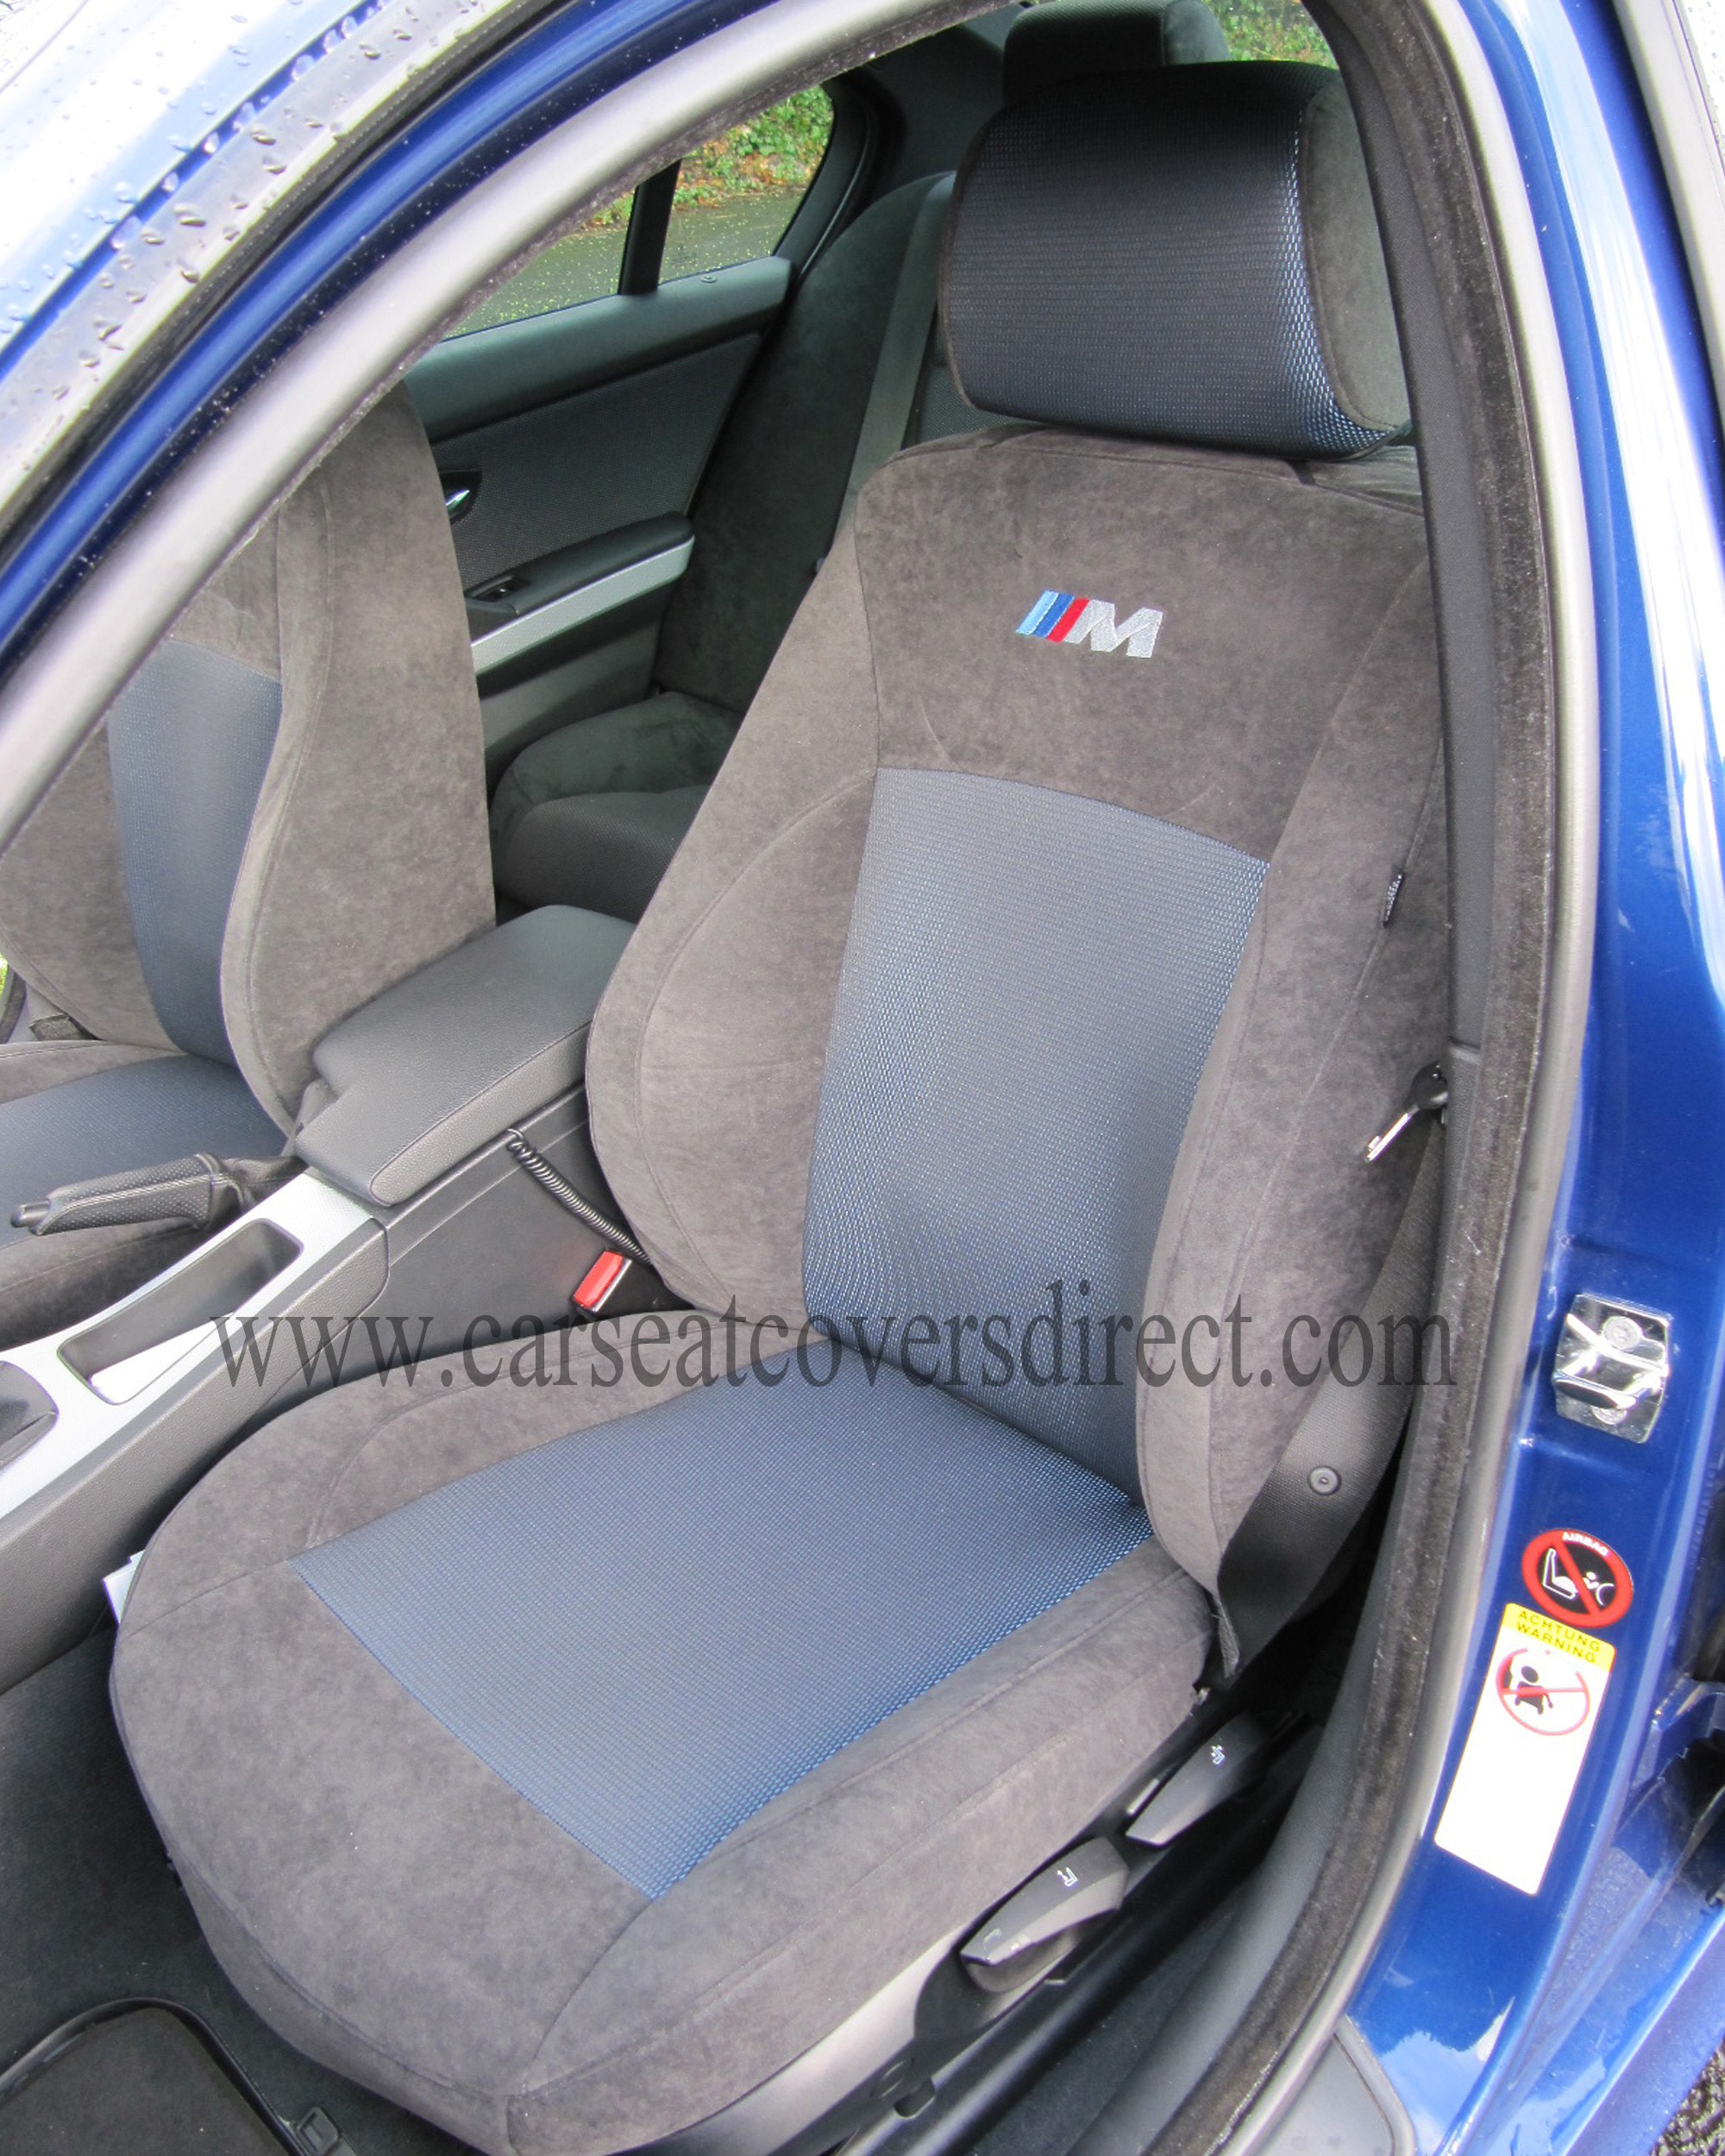 bmw 3 series e90 cloth covers carseatcovers car seat covers direct tailored to your choice. Black Bedroom Furniture Sets. Home Design Ideas